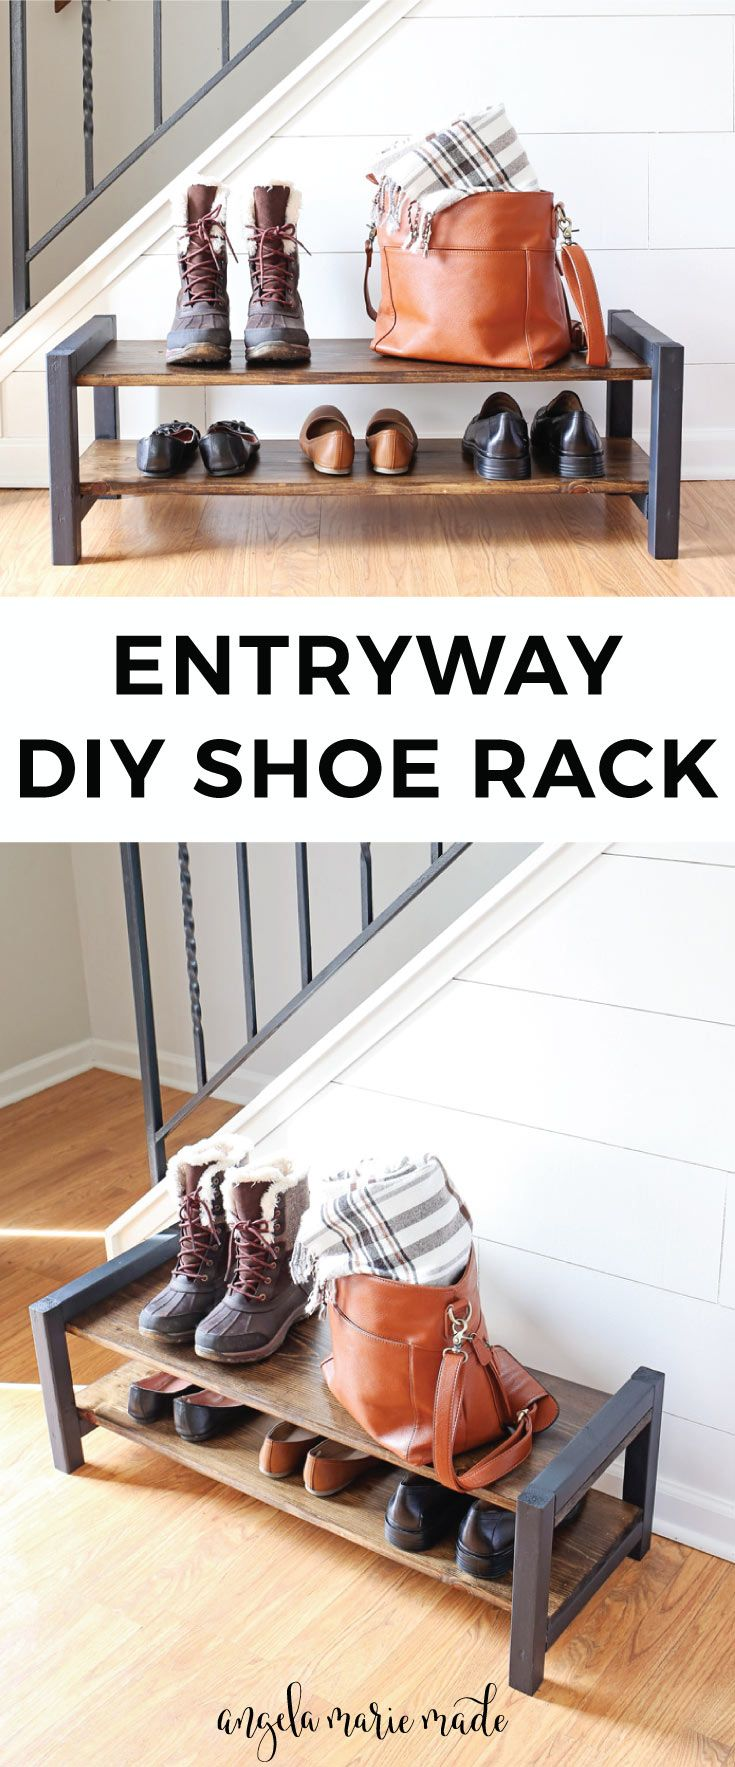 the 25 best shoe racks ideas on pinterest diy shoe rack wood shoe rack and shoe rack pallet. Black Bedroom Furniture Sets. Home Design Ideas